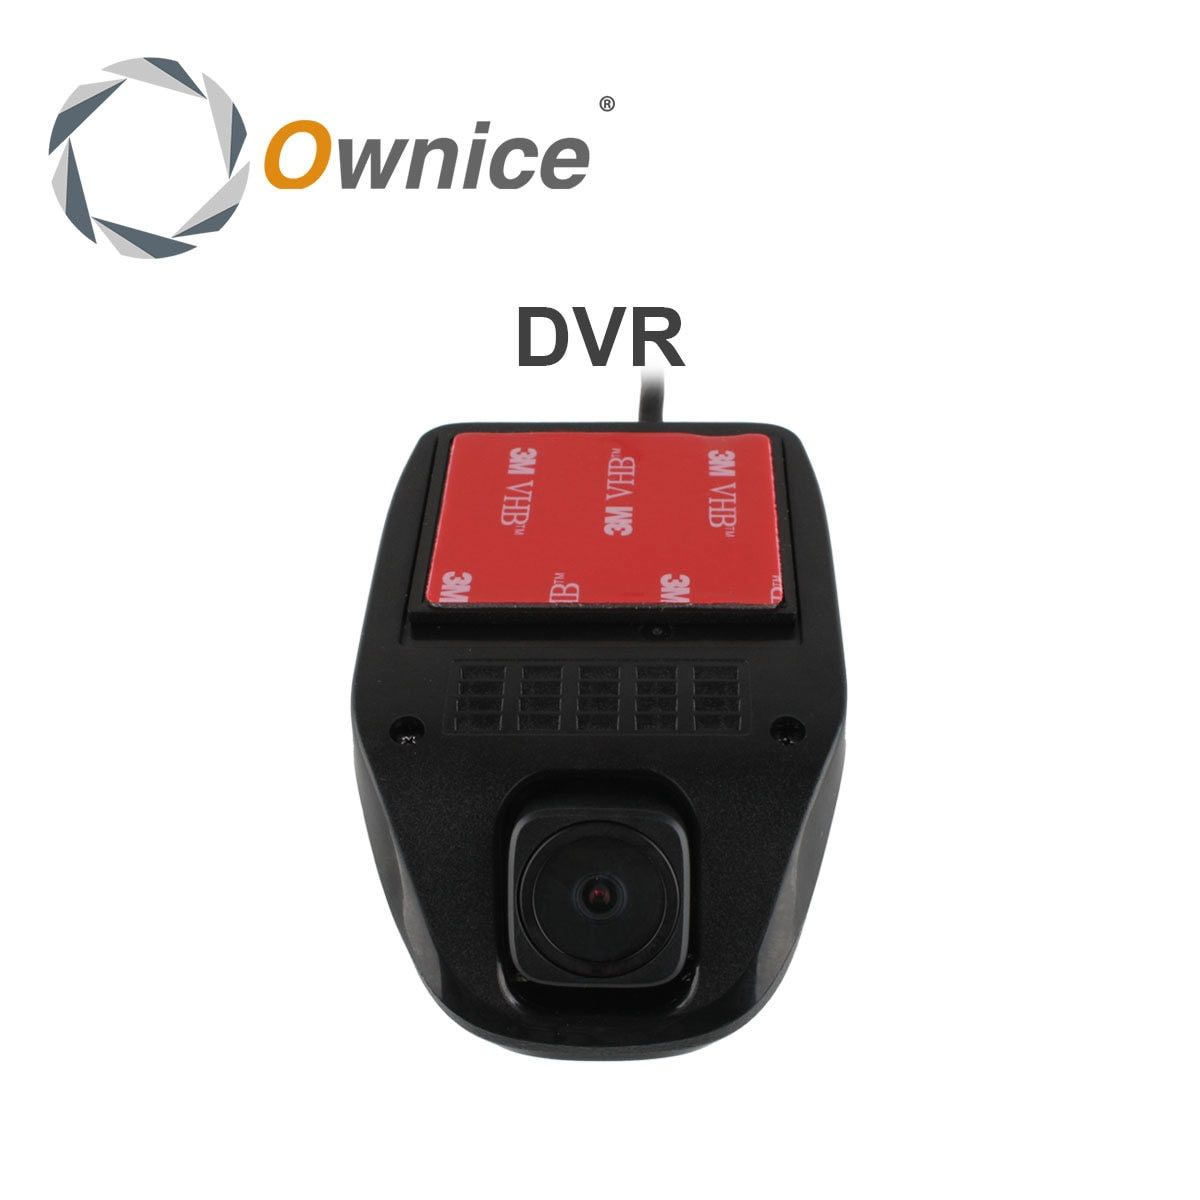 Special DVR without Battery For Ownice C500 Car DVD and the DVD manufacture date must after 10th of April, 2017 (included 10th).